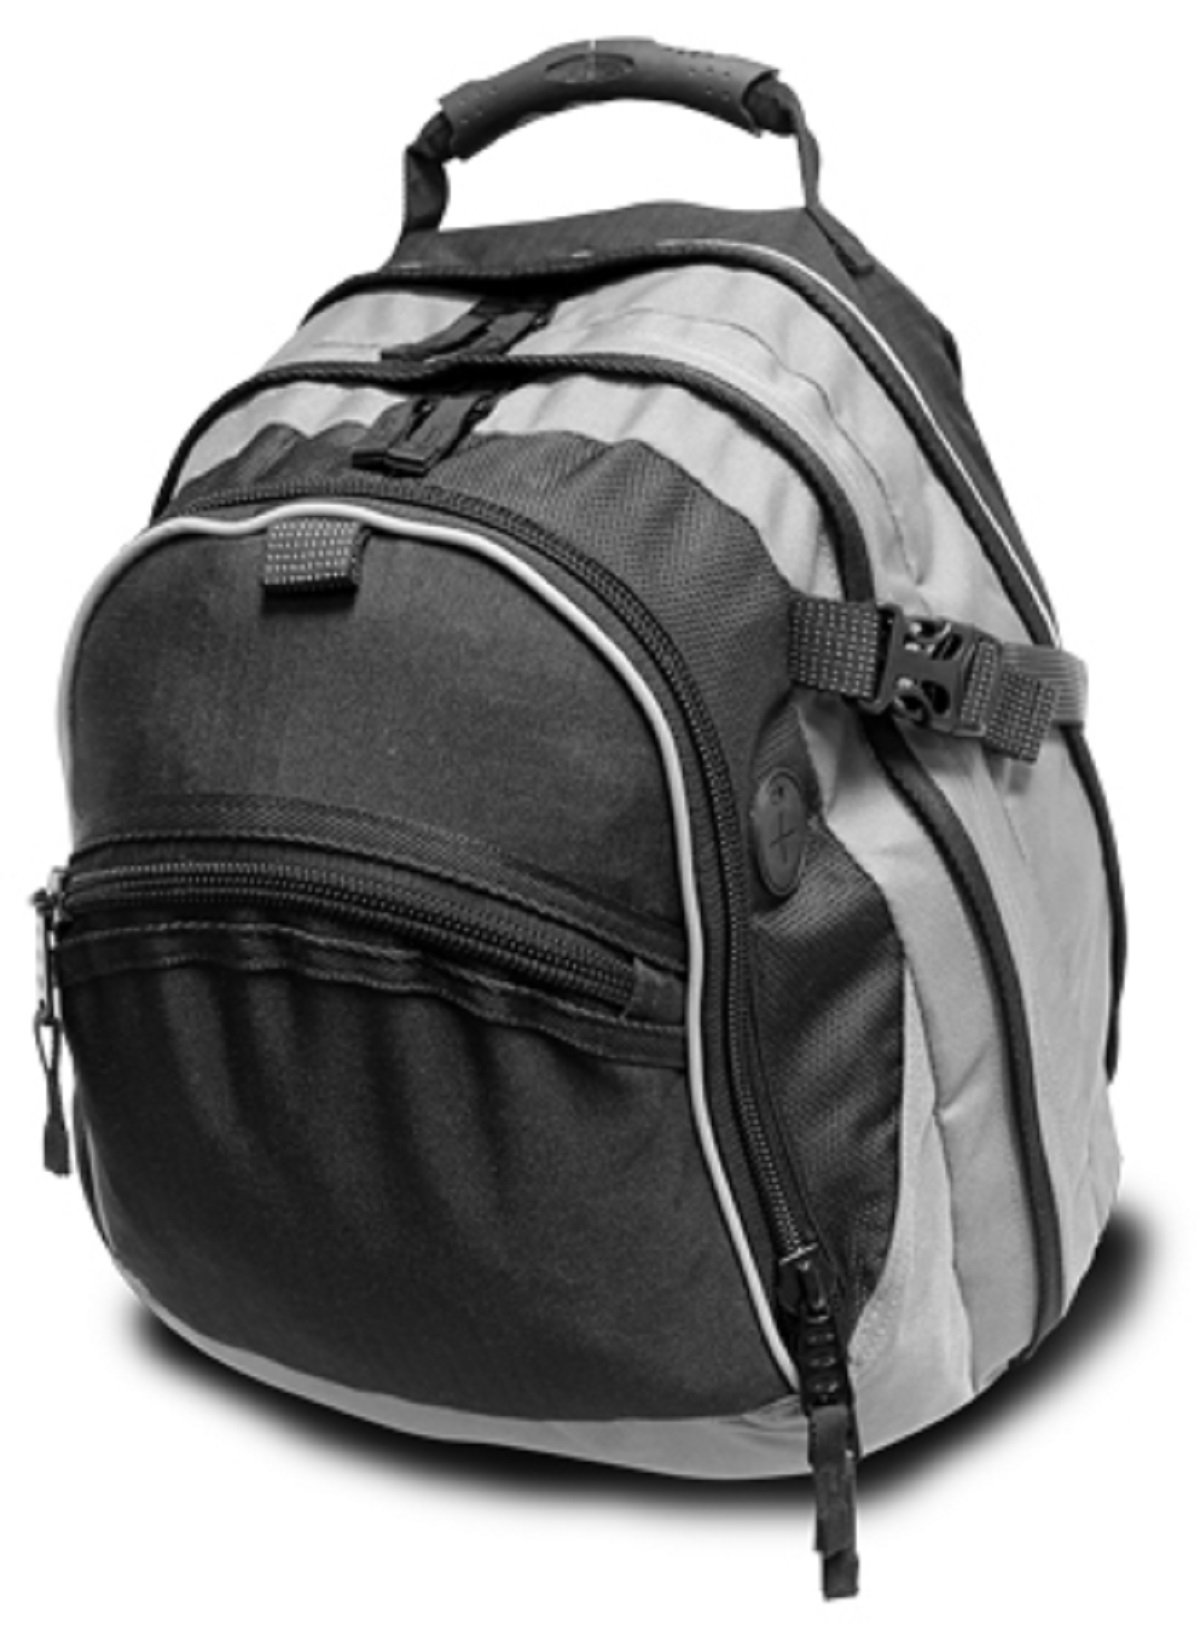 UNION SQUARE BACKPACK, Black/Gray, Case of 12 by DollarItemDirect